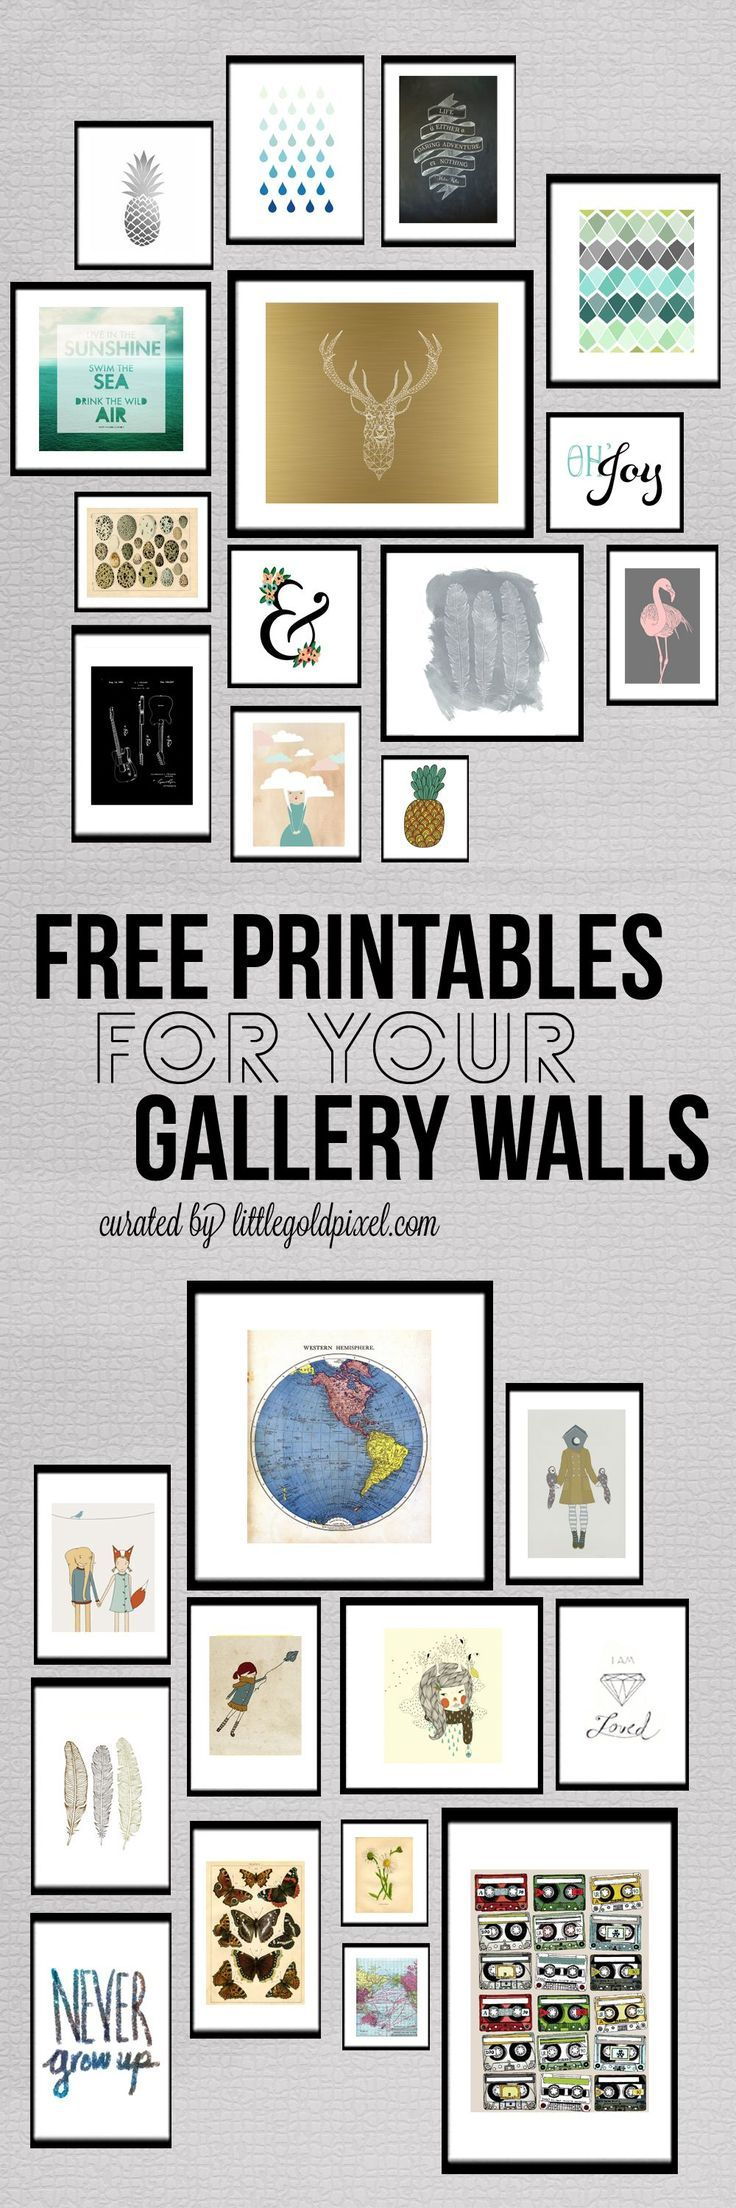 best wall art images on pinterest free printables printable